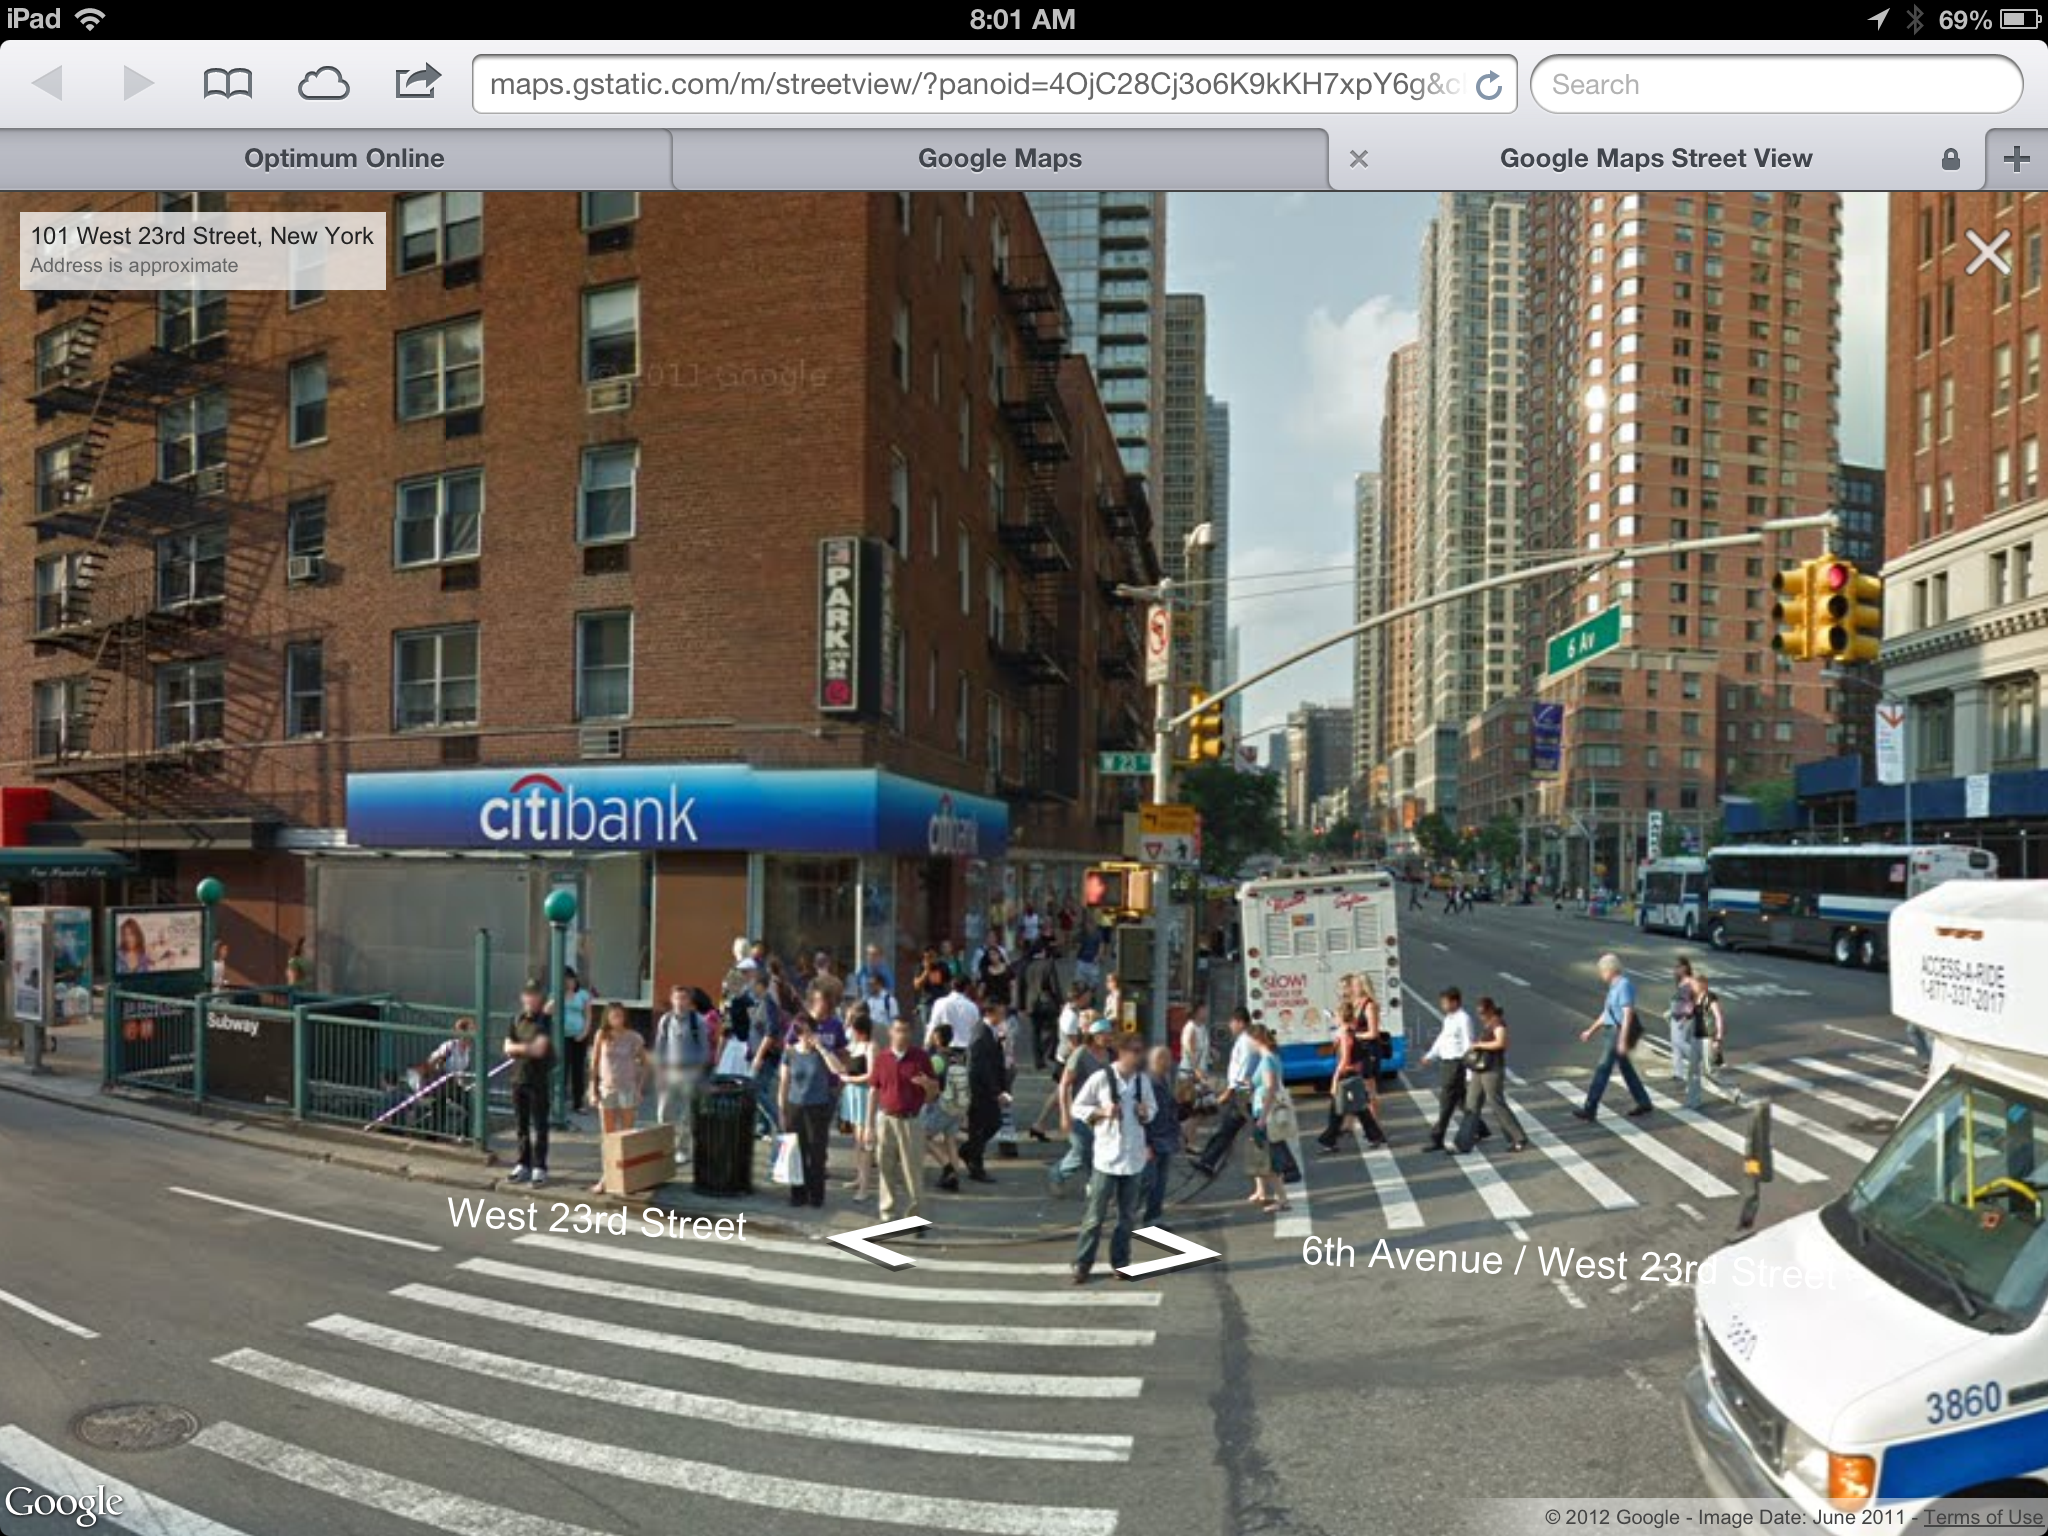 Google Maps web Street View goes live on iOS devices - 9to5Mac on